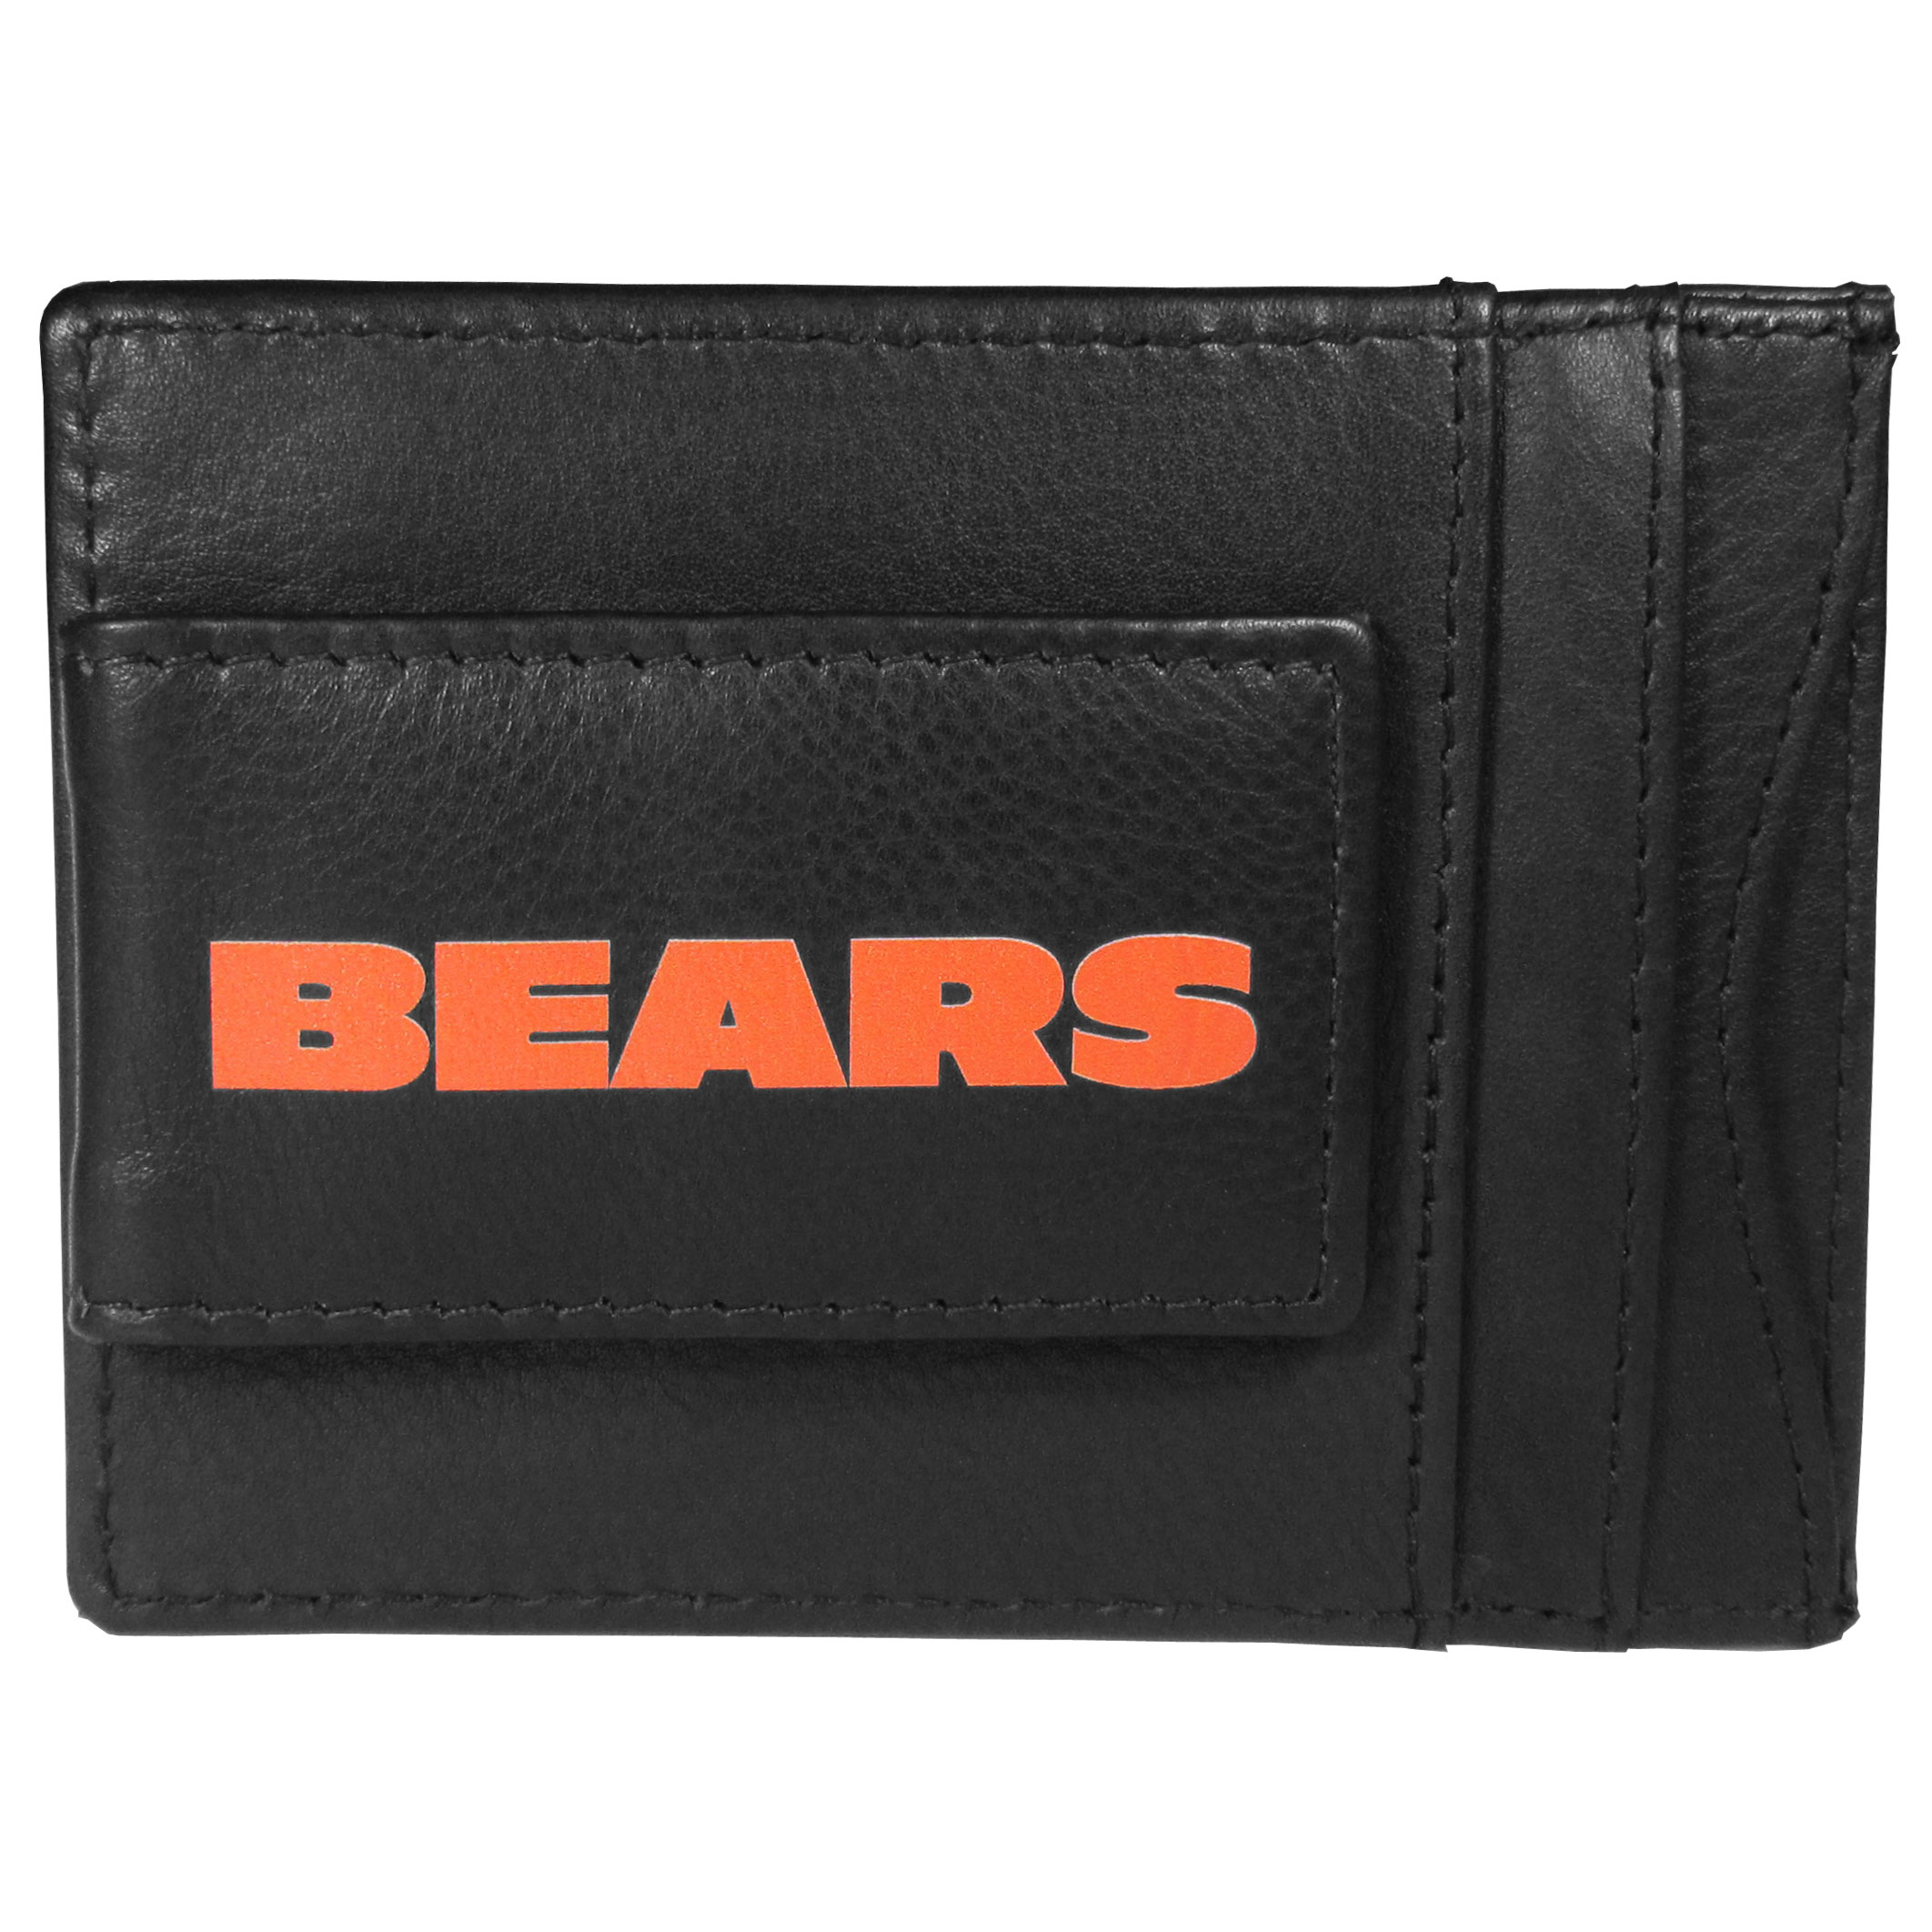 Chicago Bears Logo Leather Cash and Cardholder - This super slim leather wallet lets you have all the benefits of a money clip while keeping the organization of a wallet. On one side of this front pocket wallet there is a strong, magnetic money clip to keep your cash easily accessible and the?Chicago Bears team logo on the front. The versatile men's accessory is a perfect addition to your fan apparel.